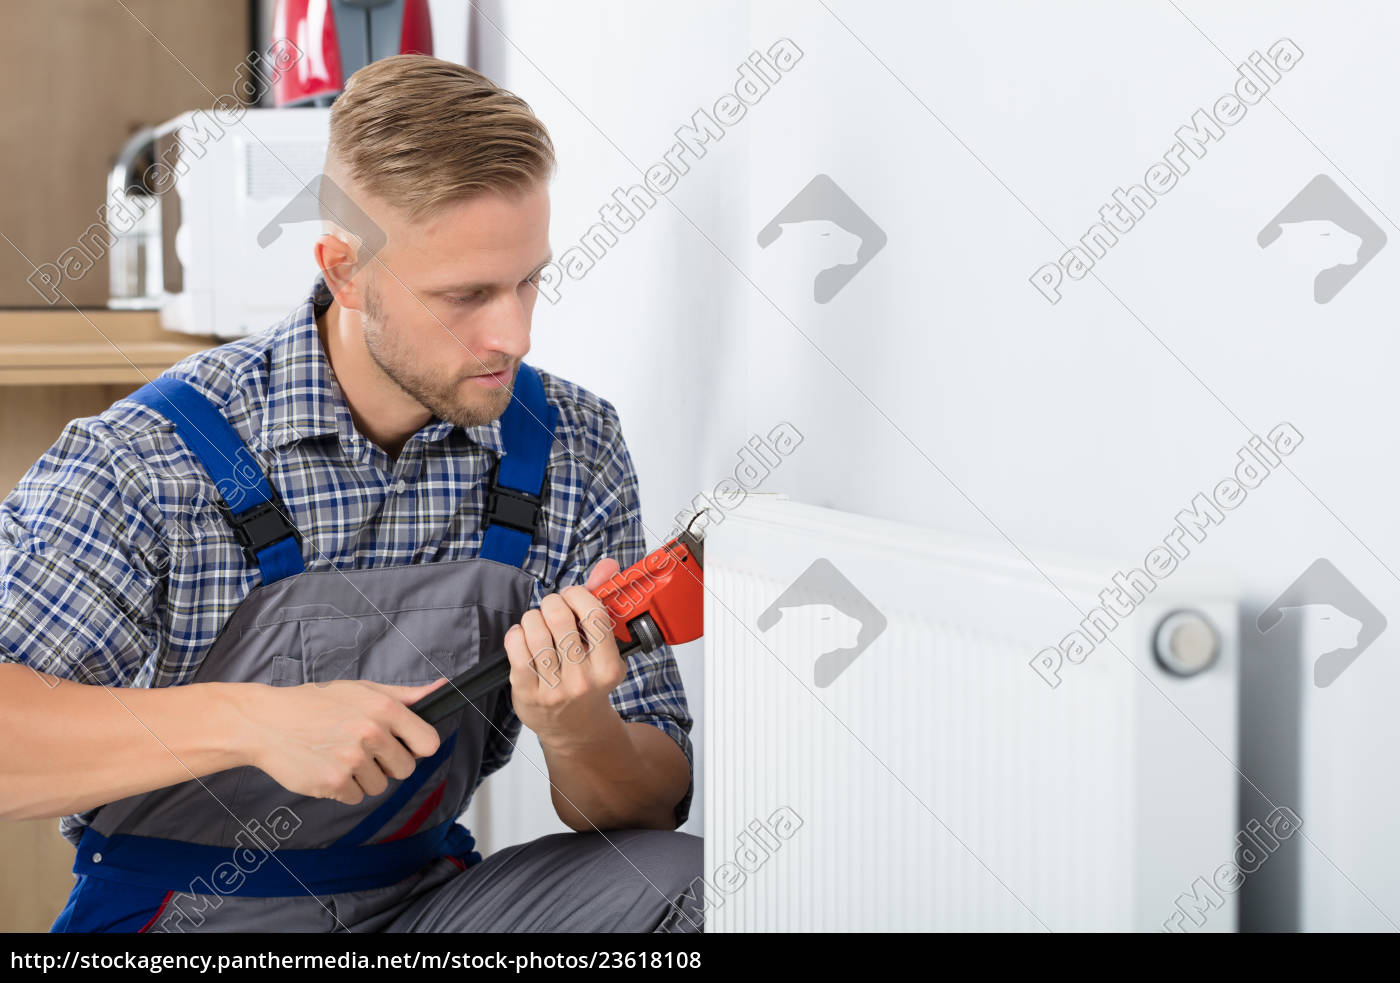 male, plumber, fixing, thermostat, using, wrench - 23618108